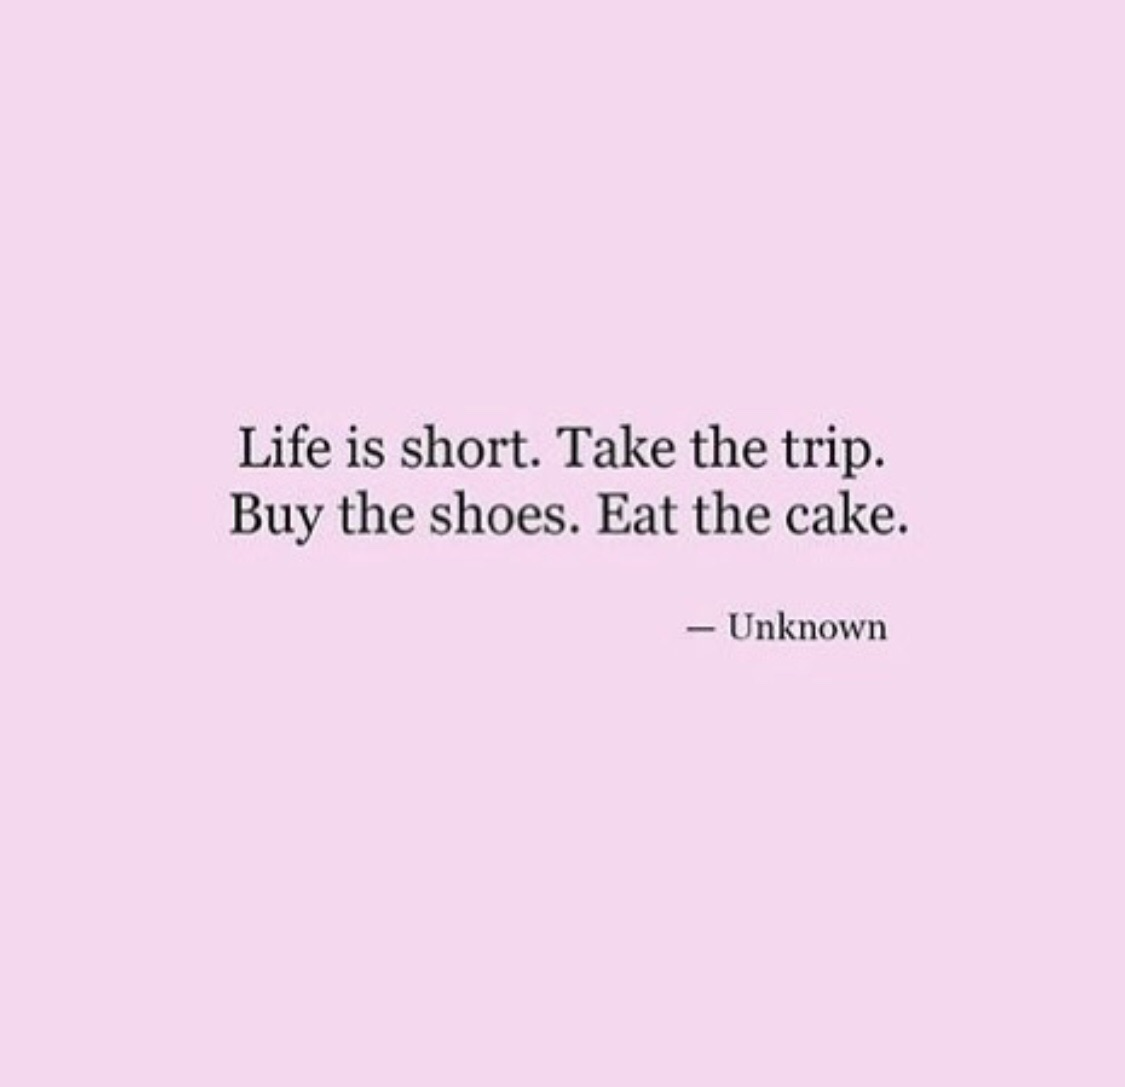 is, take and shoes